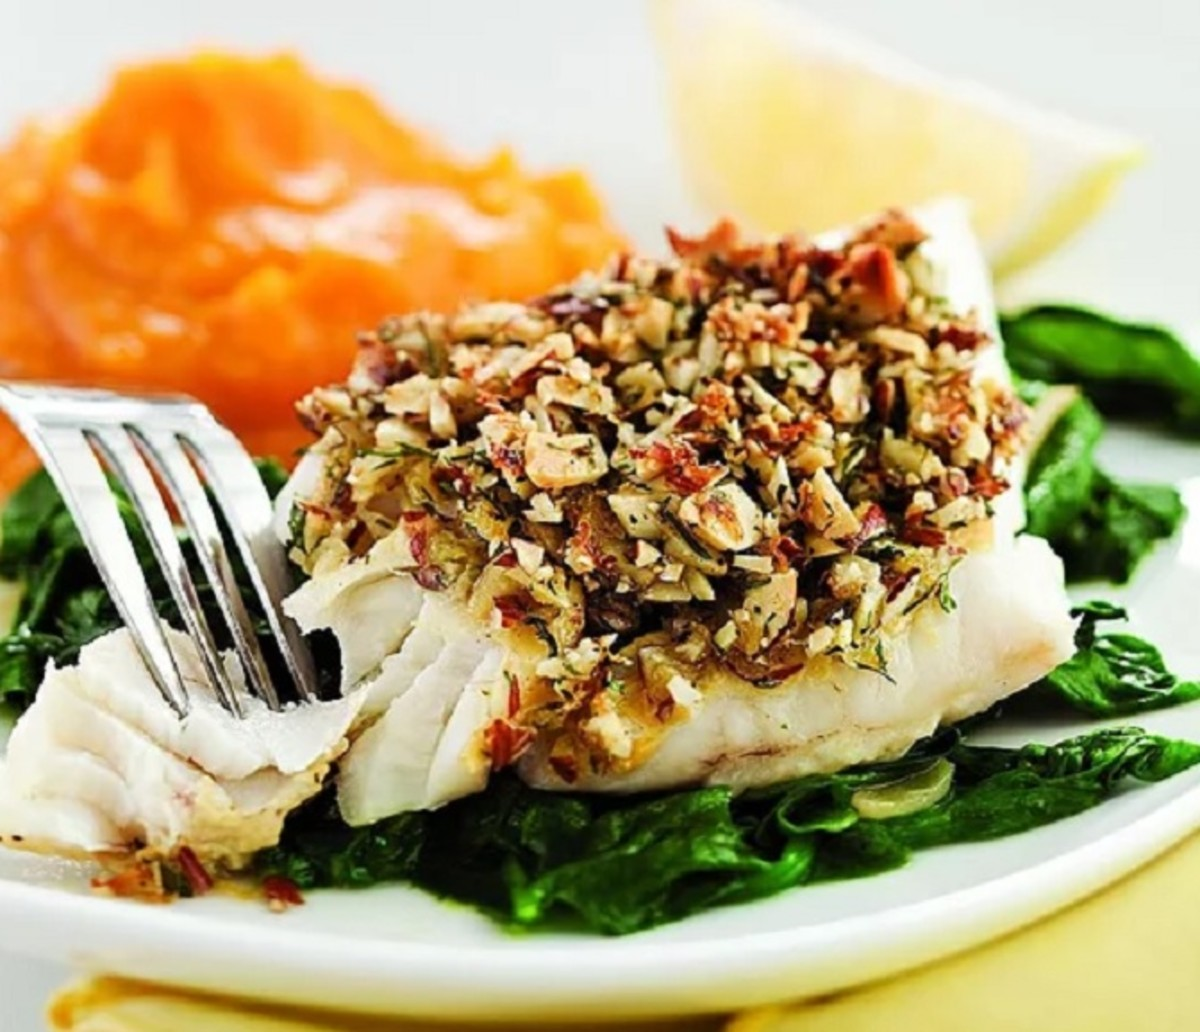 Almond and lemon crusted fish